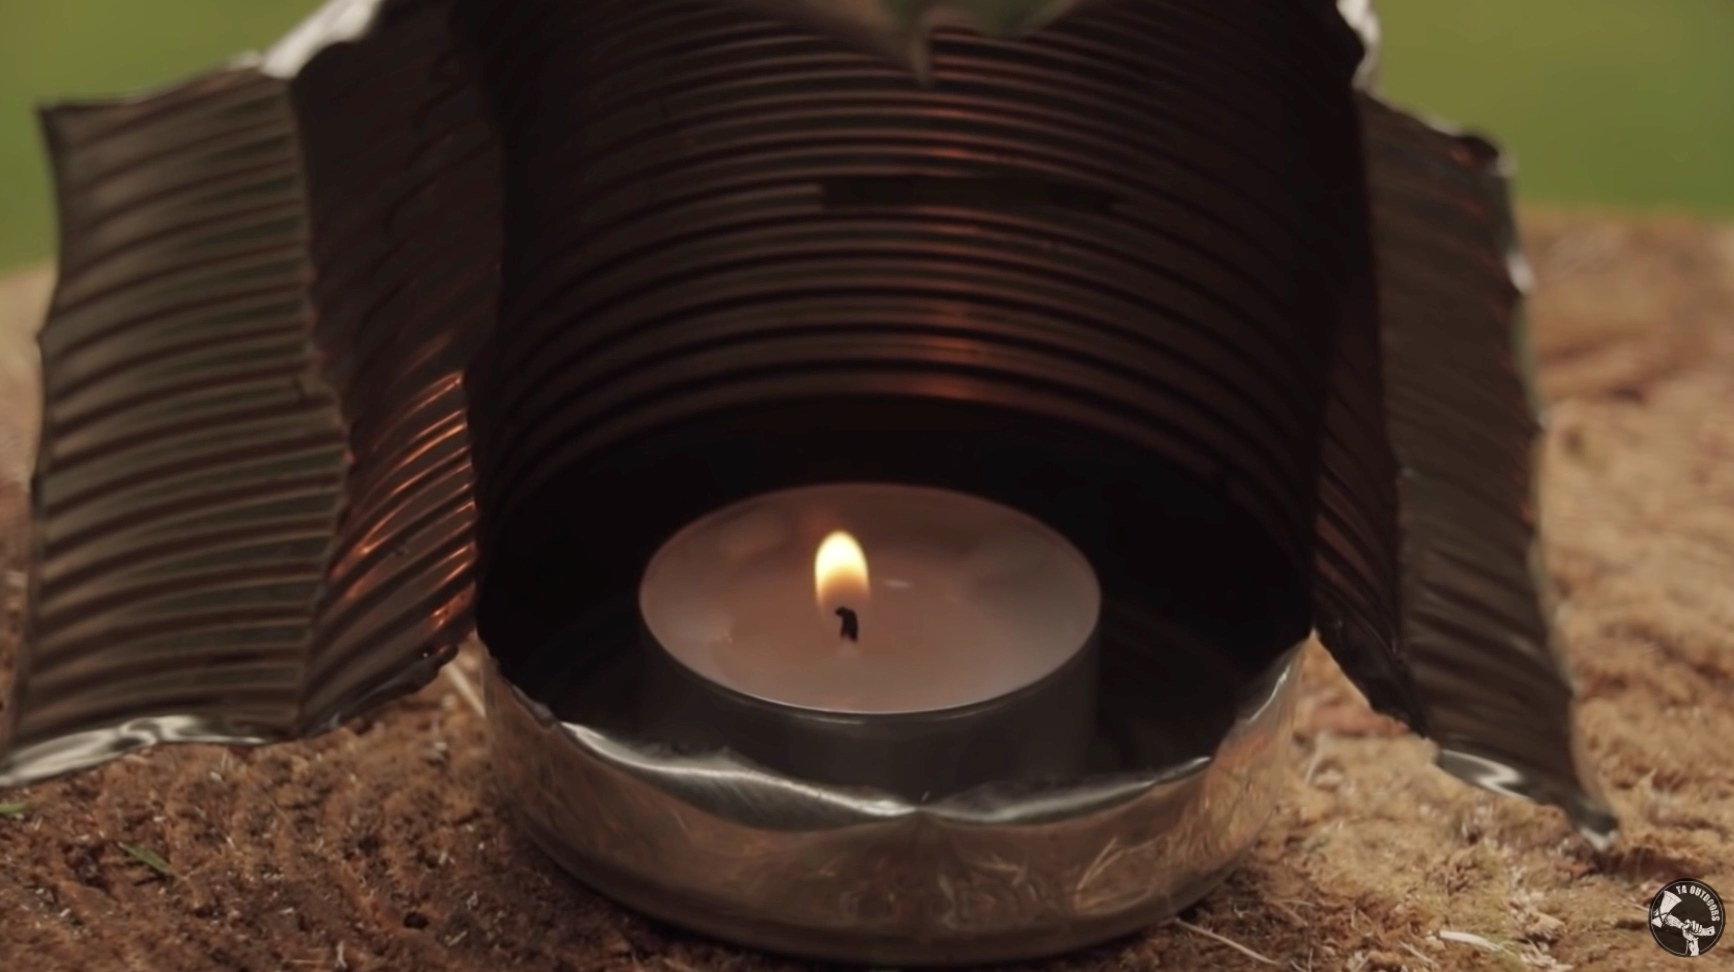 Candle holder made out of a can